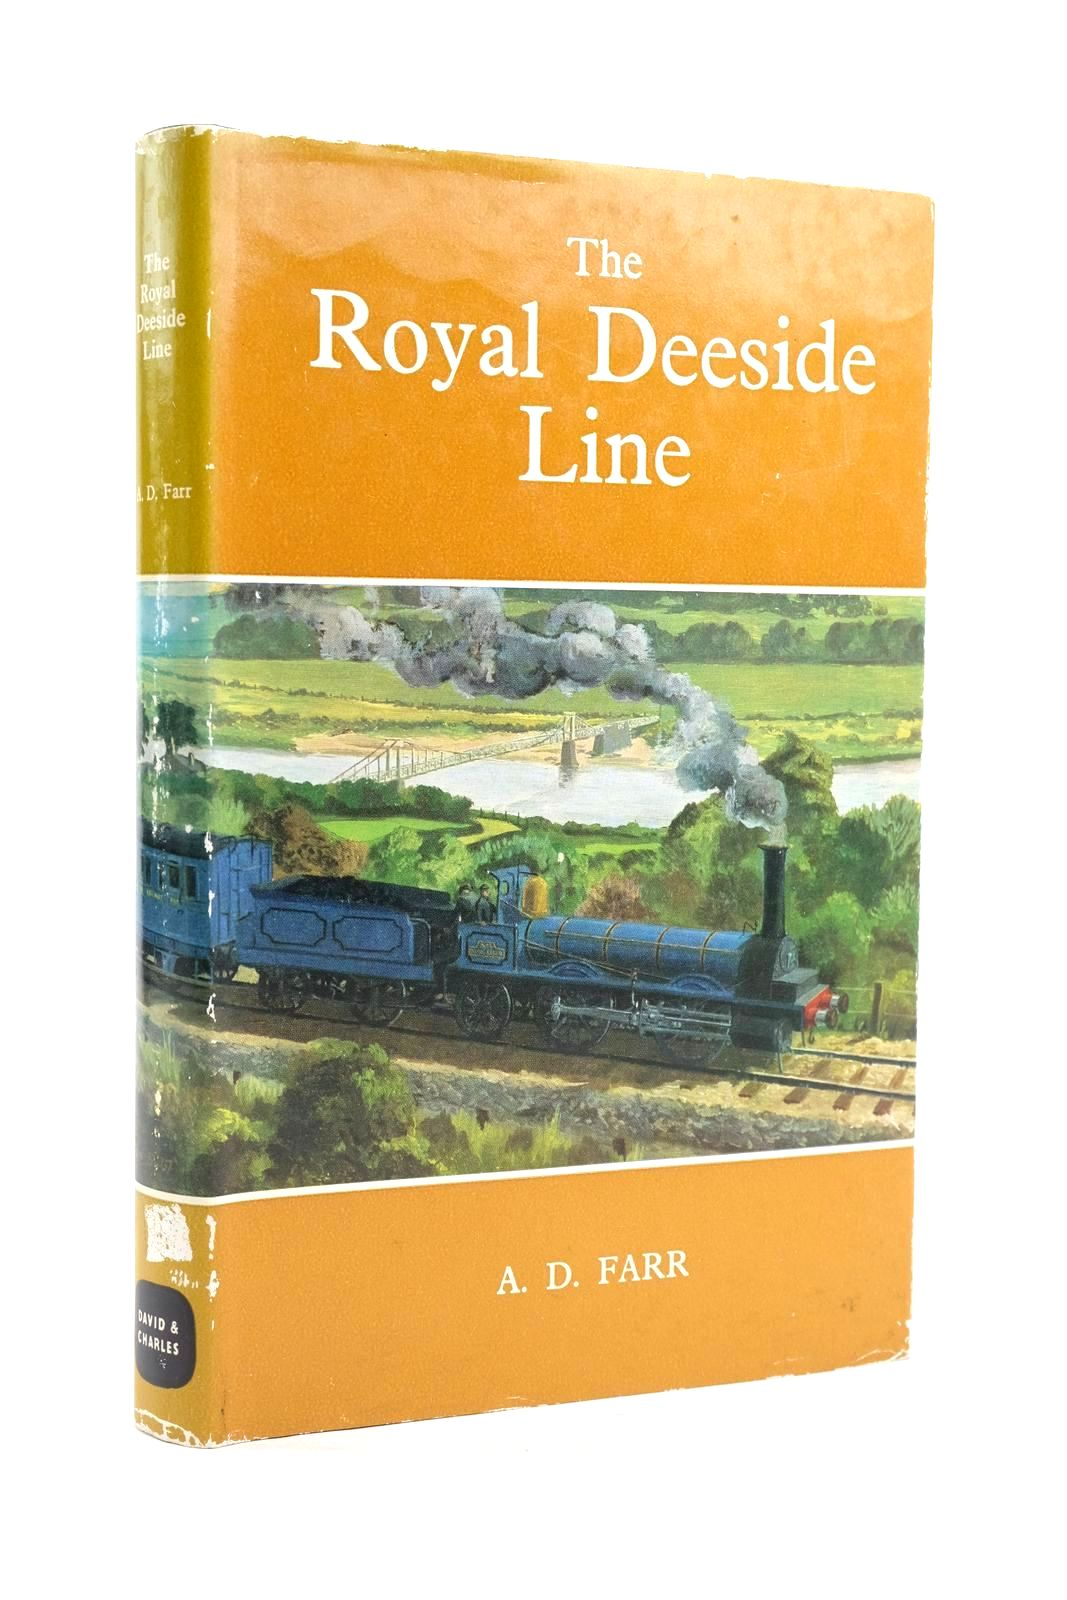 Photo of THE ROYAL DEESIDE LINE written by Farr, A.D. published by David & Charles (STOCK CODE: 1319936)  for sale by Stella & Rose's Books